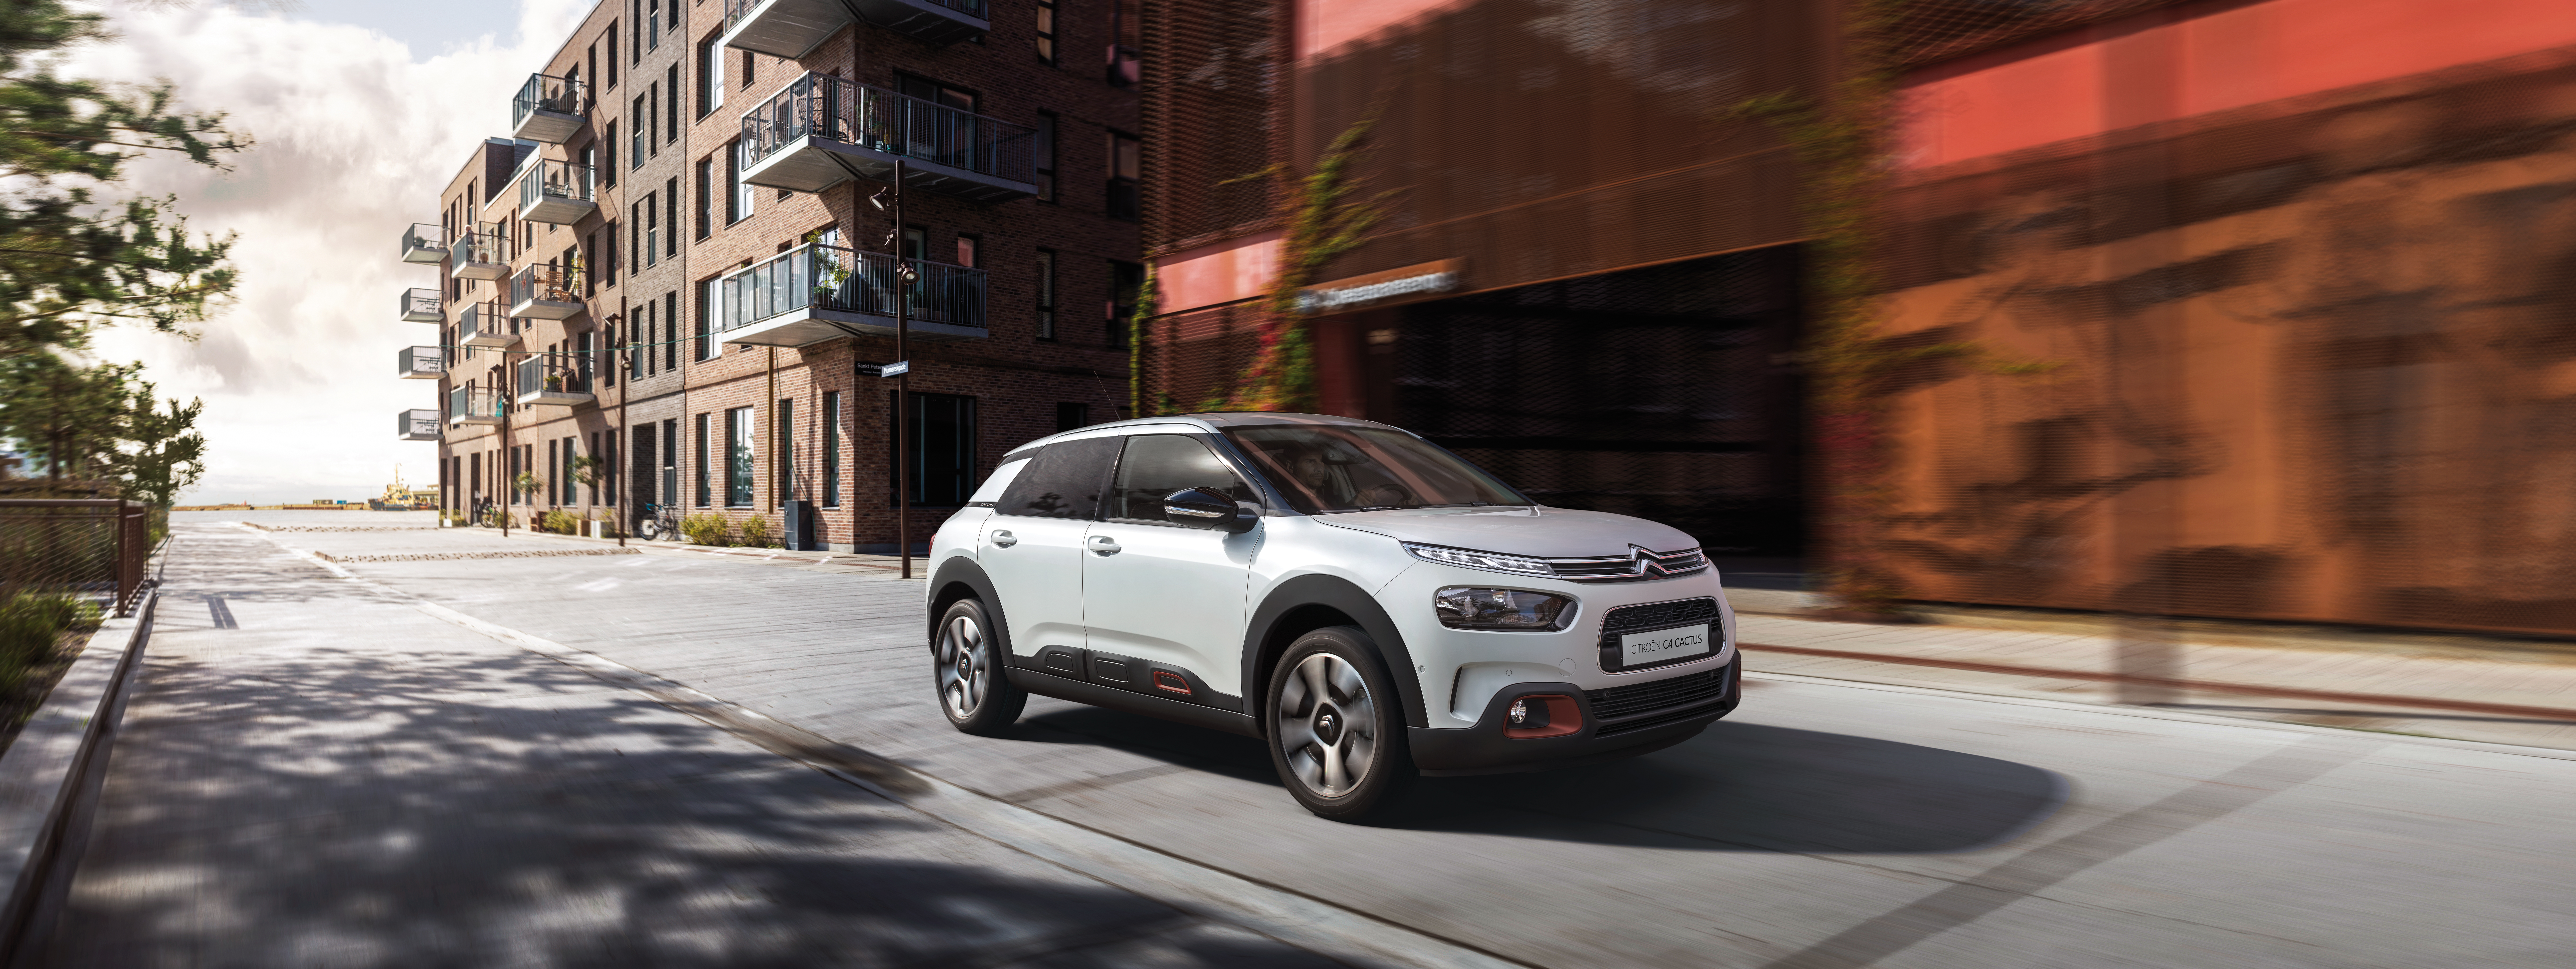 Be the First to View the New Citroen C4 Cactus